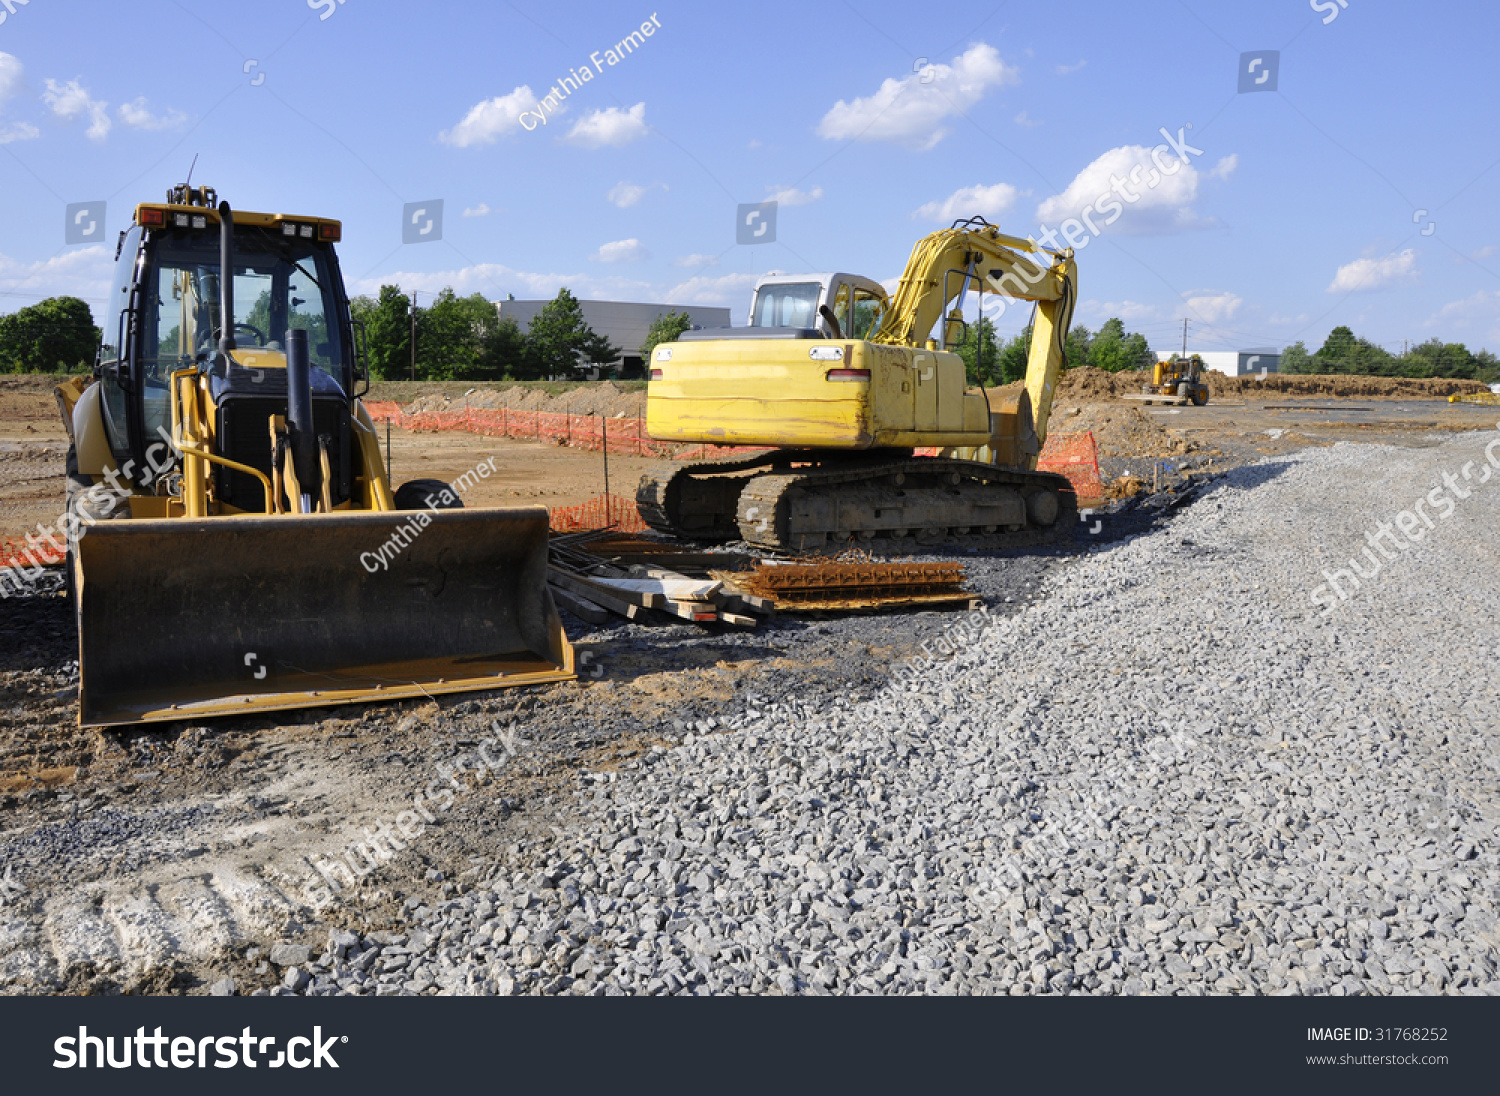 Heavy Duty Construction : Heavy duty construction equipment at a site